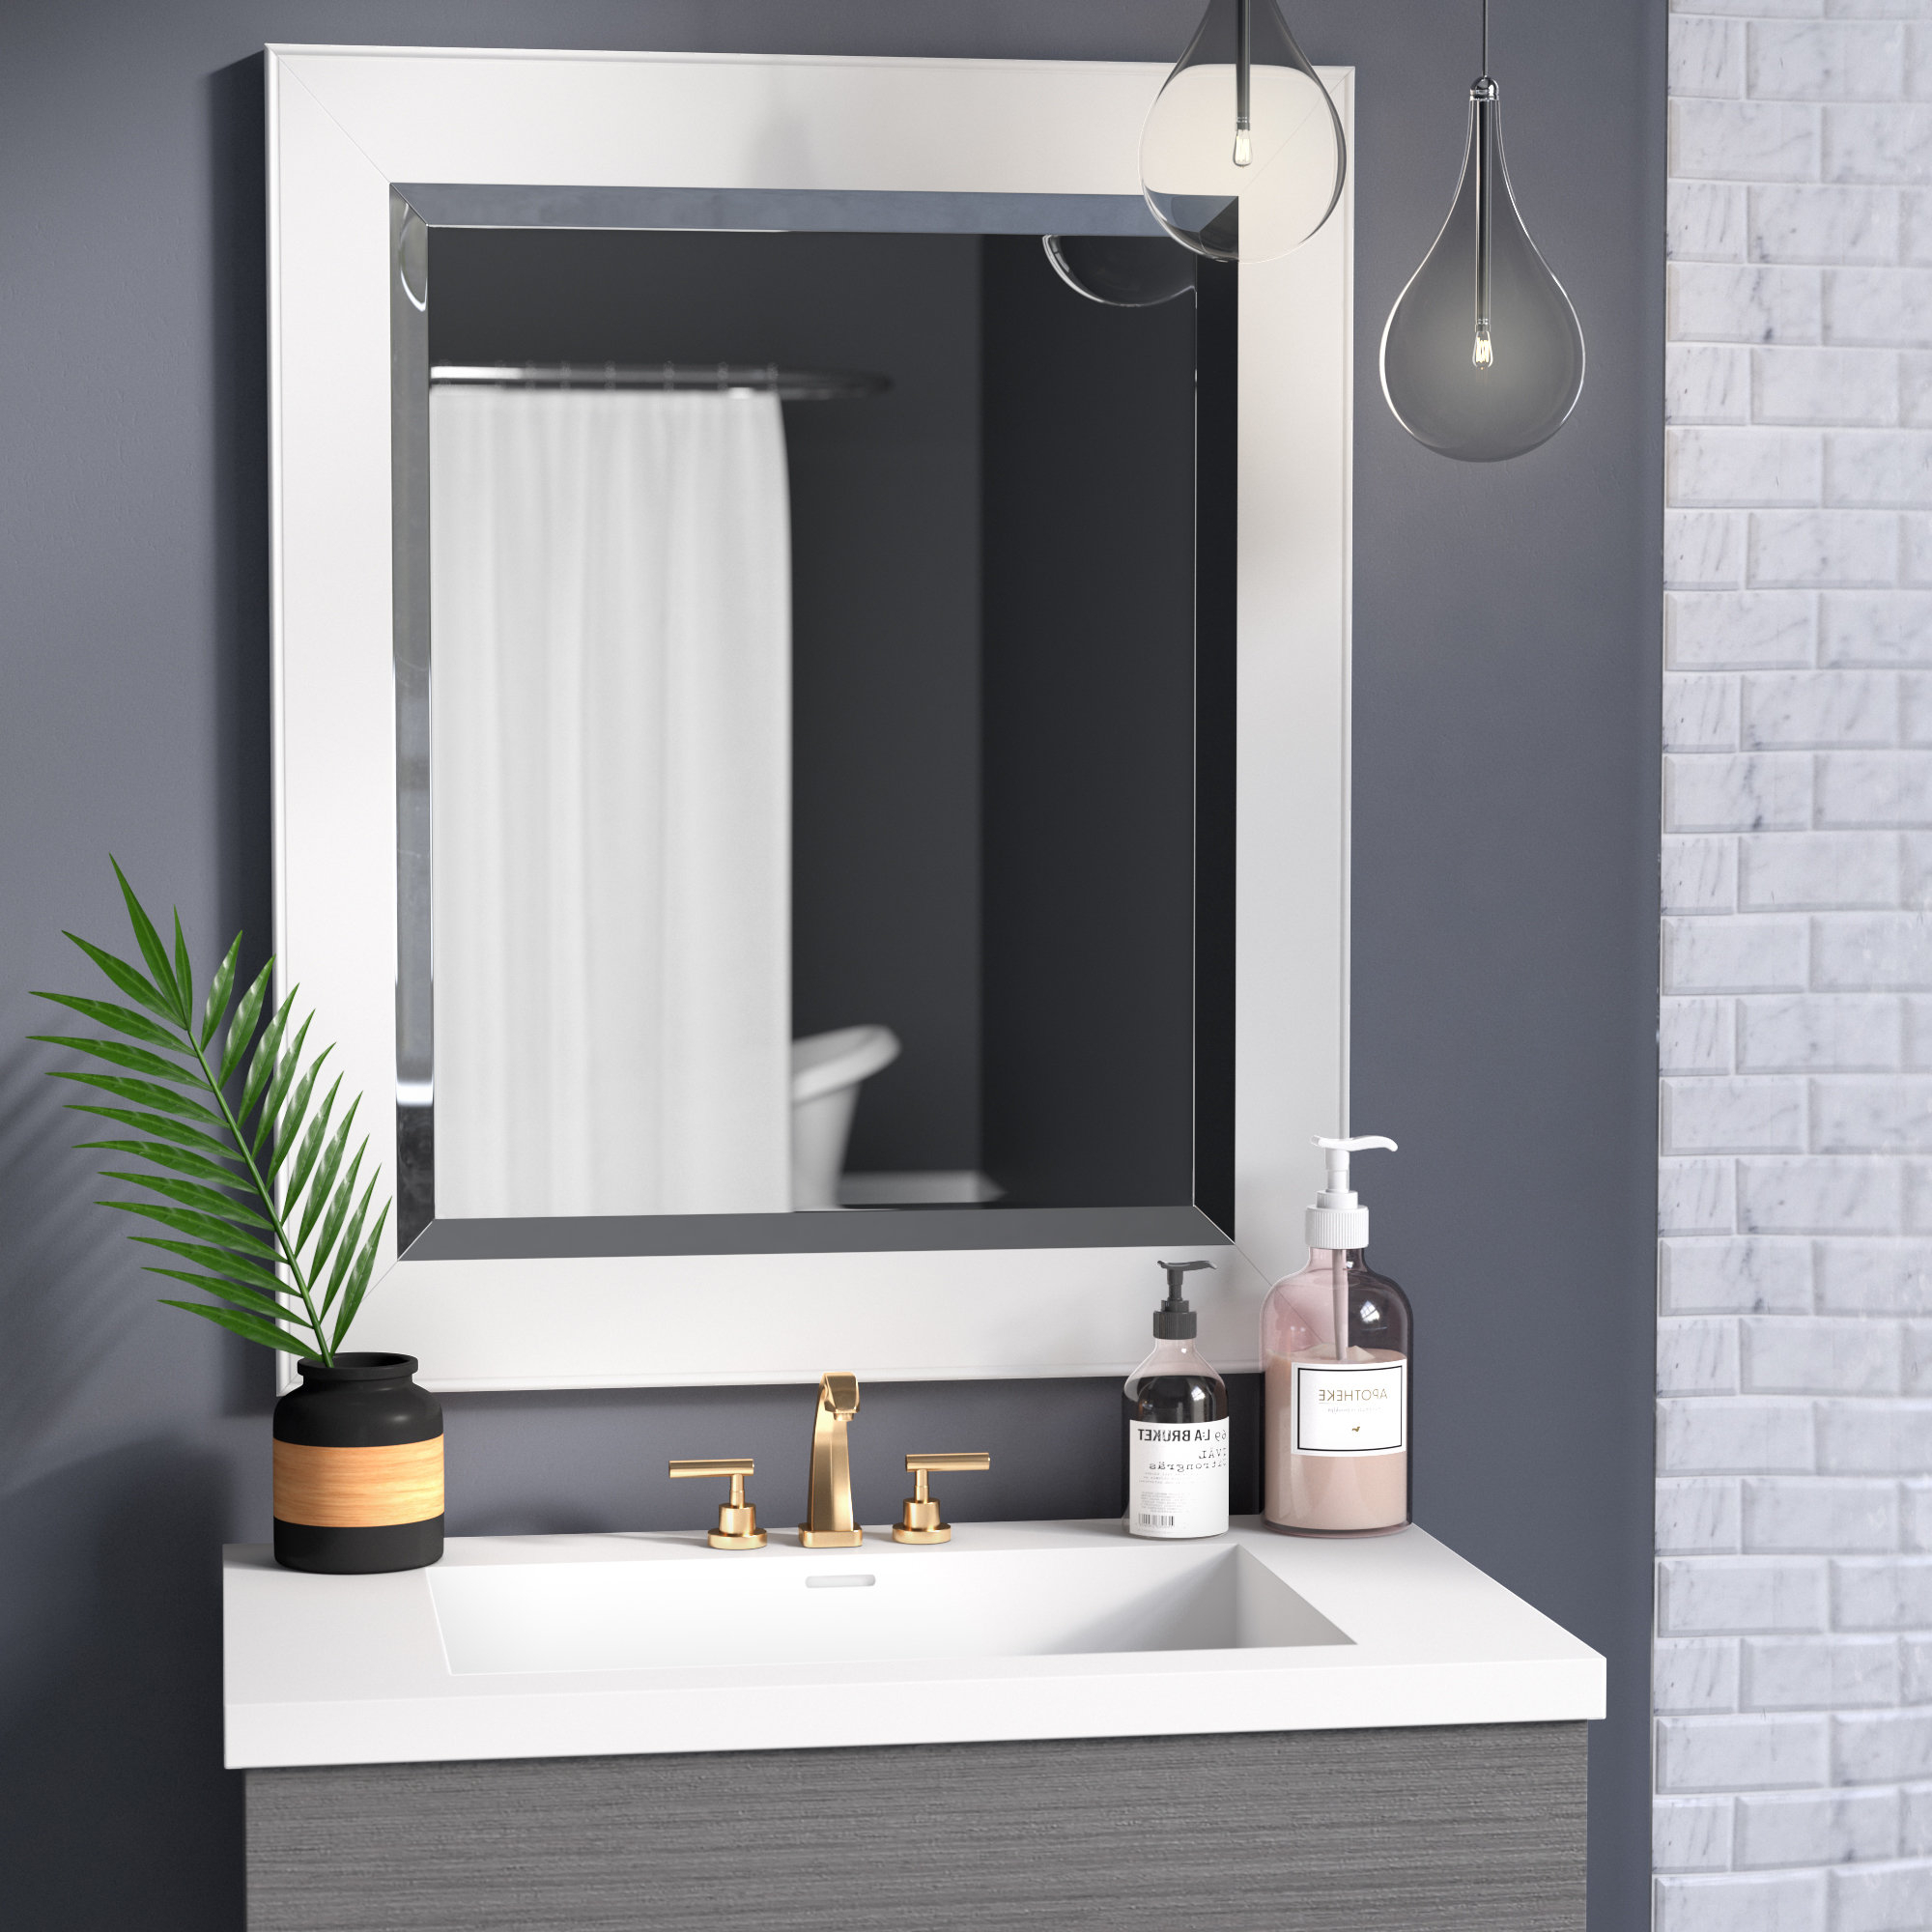 Ivor Bathroom/vanity Wall Mirror Pertaining To Well Known Vanity Wall Mirrors (View 10 of 20)